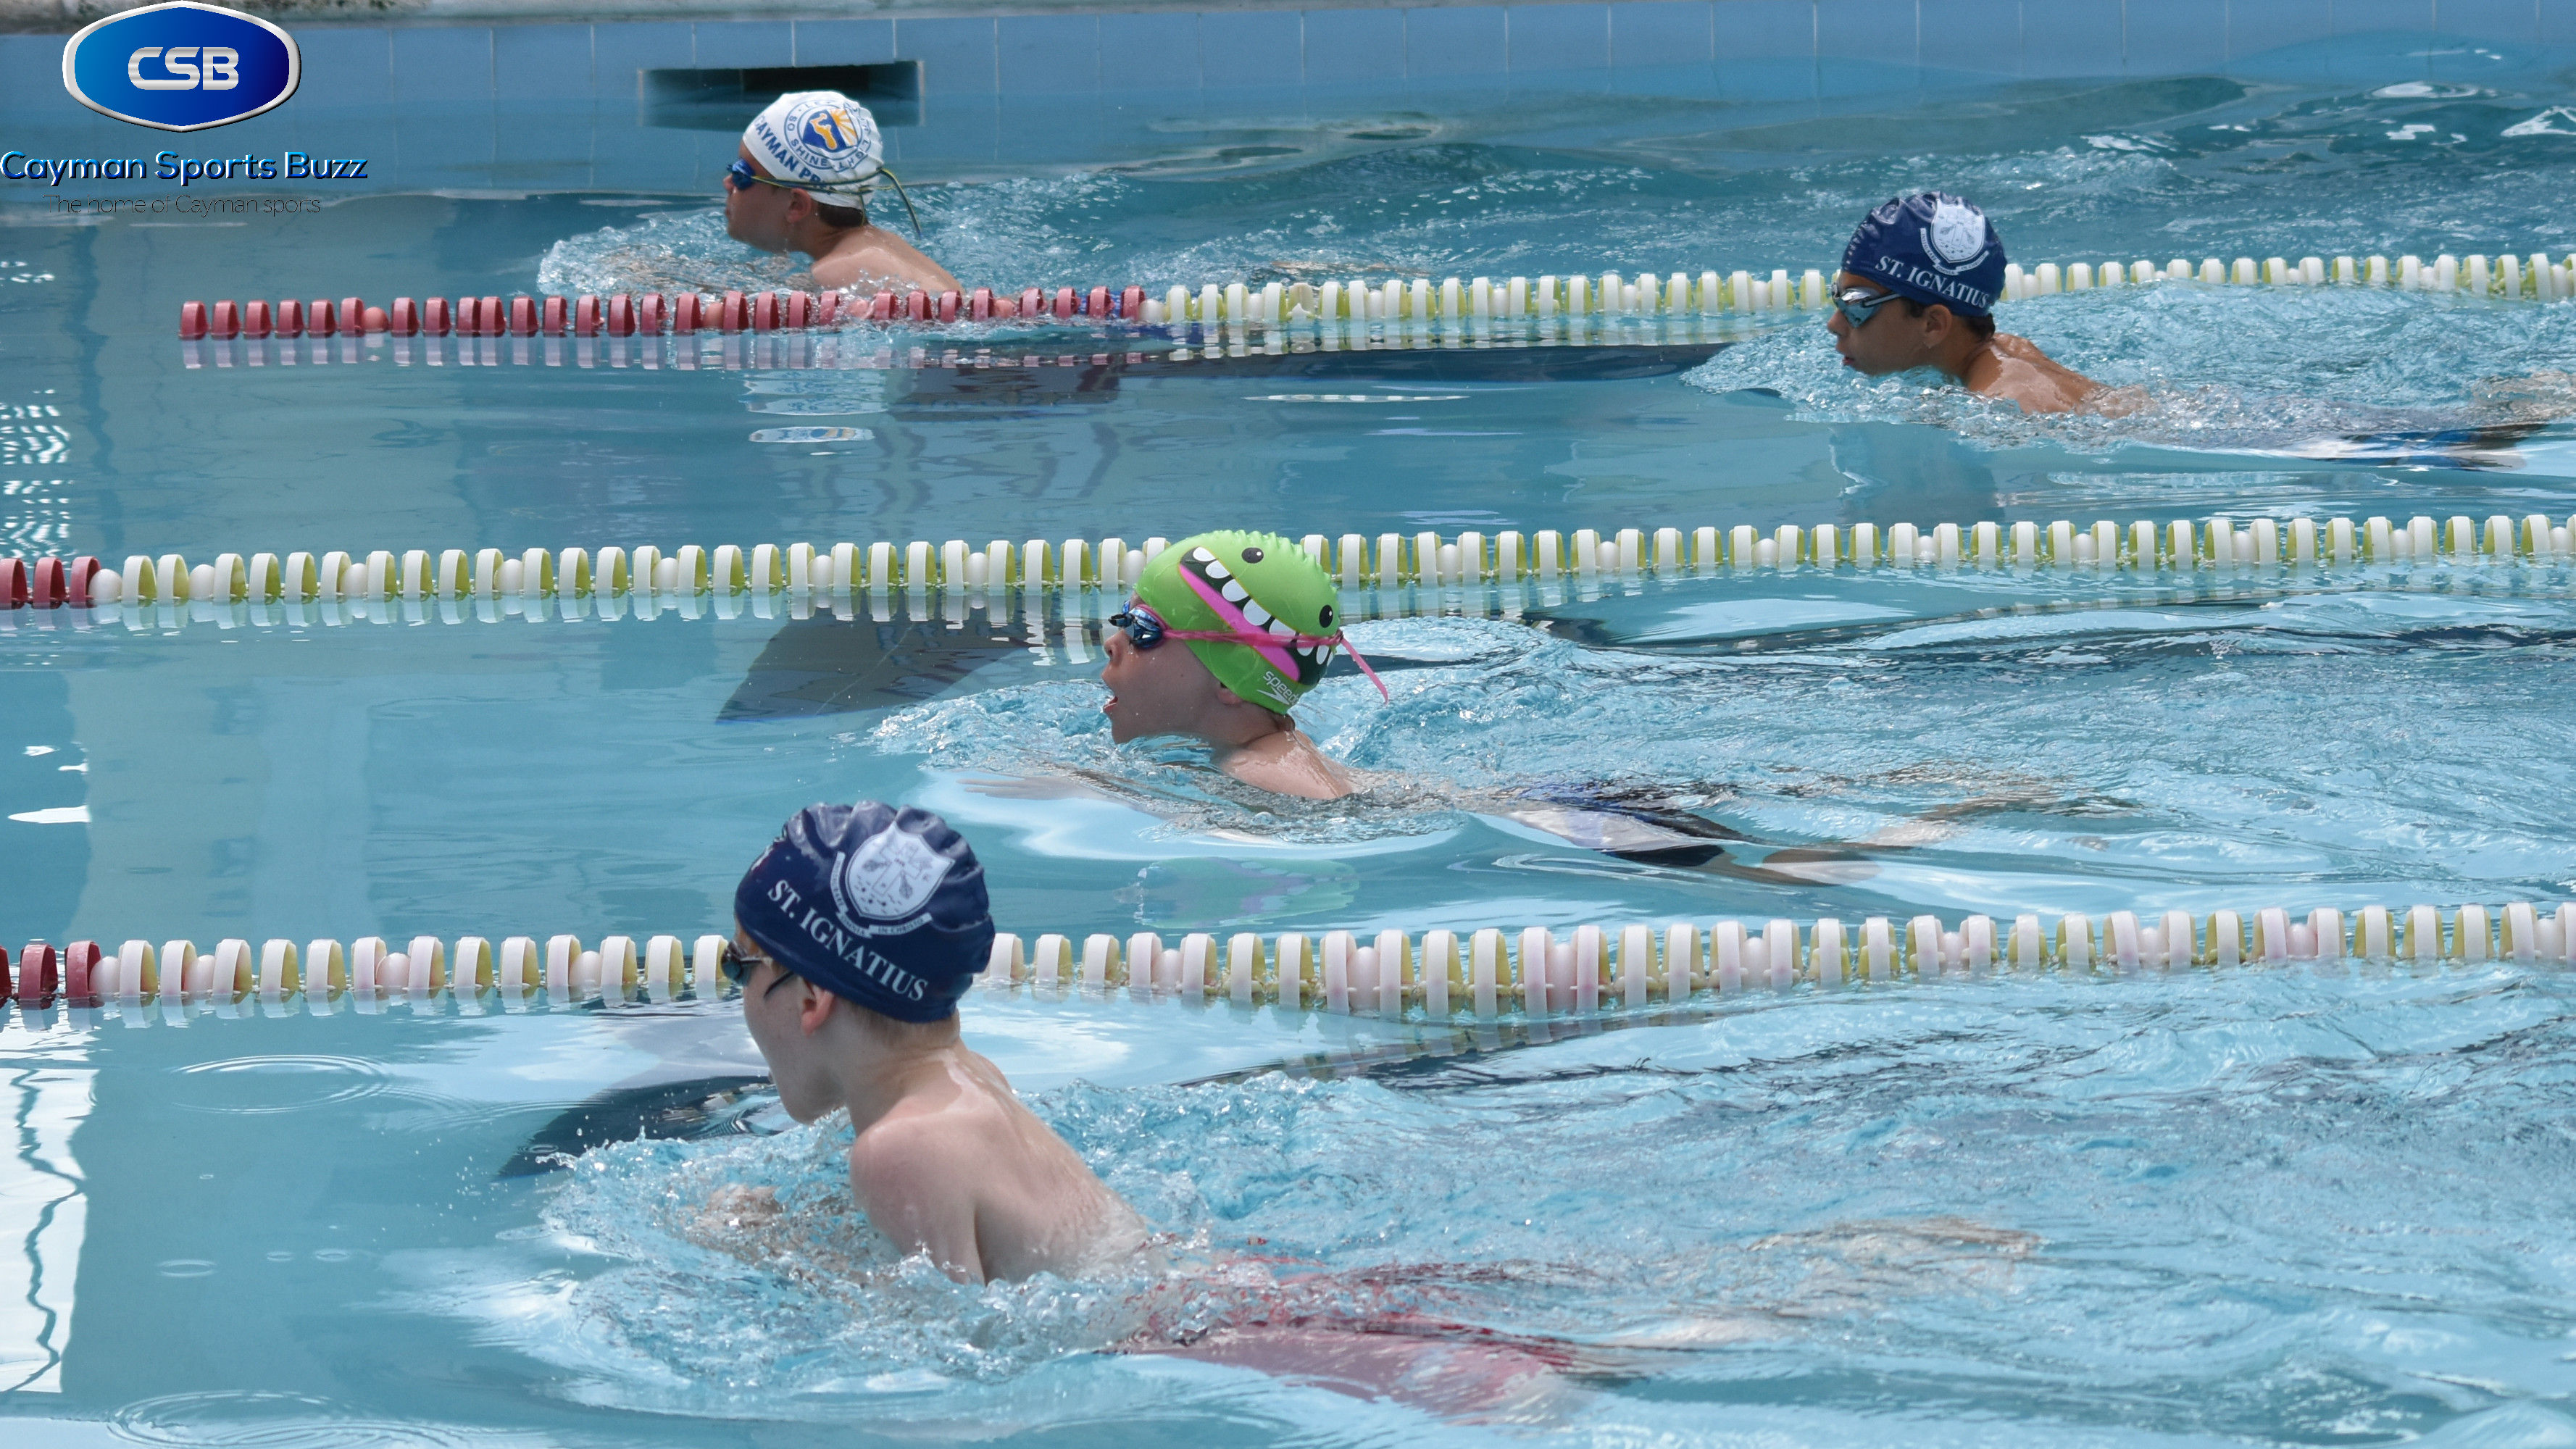 inter primary school swimming meet backdrops